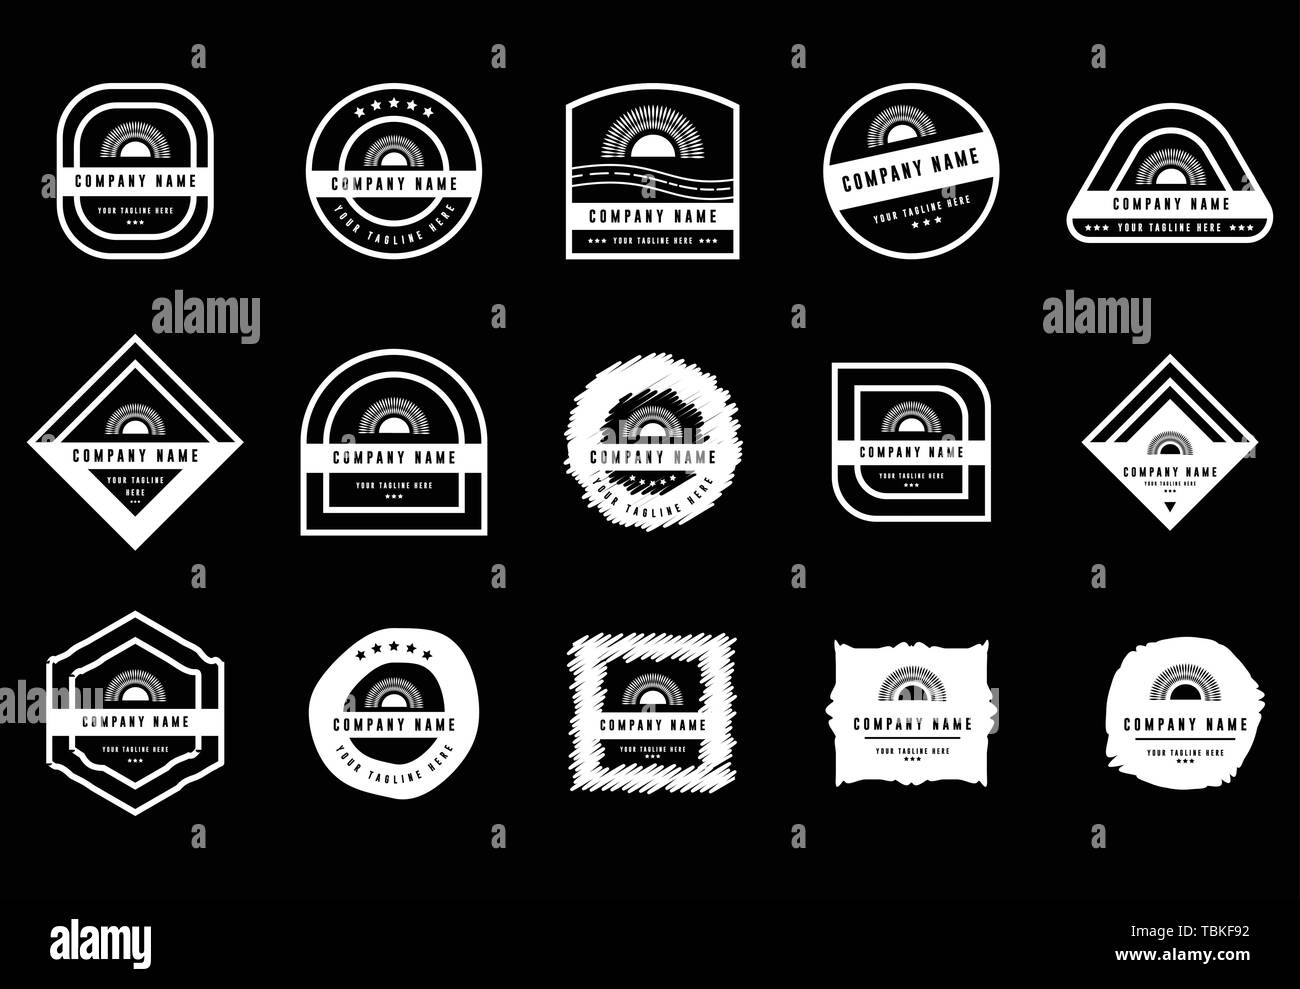 Badge logo set - badges and labels logo - vintage Insignias and logotypes set - Vector White - Stock Vector